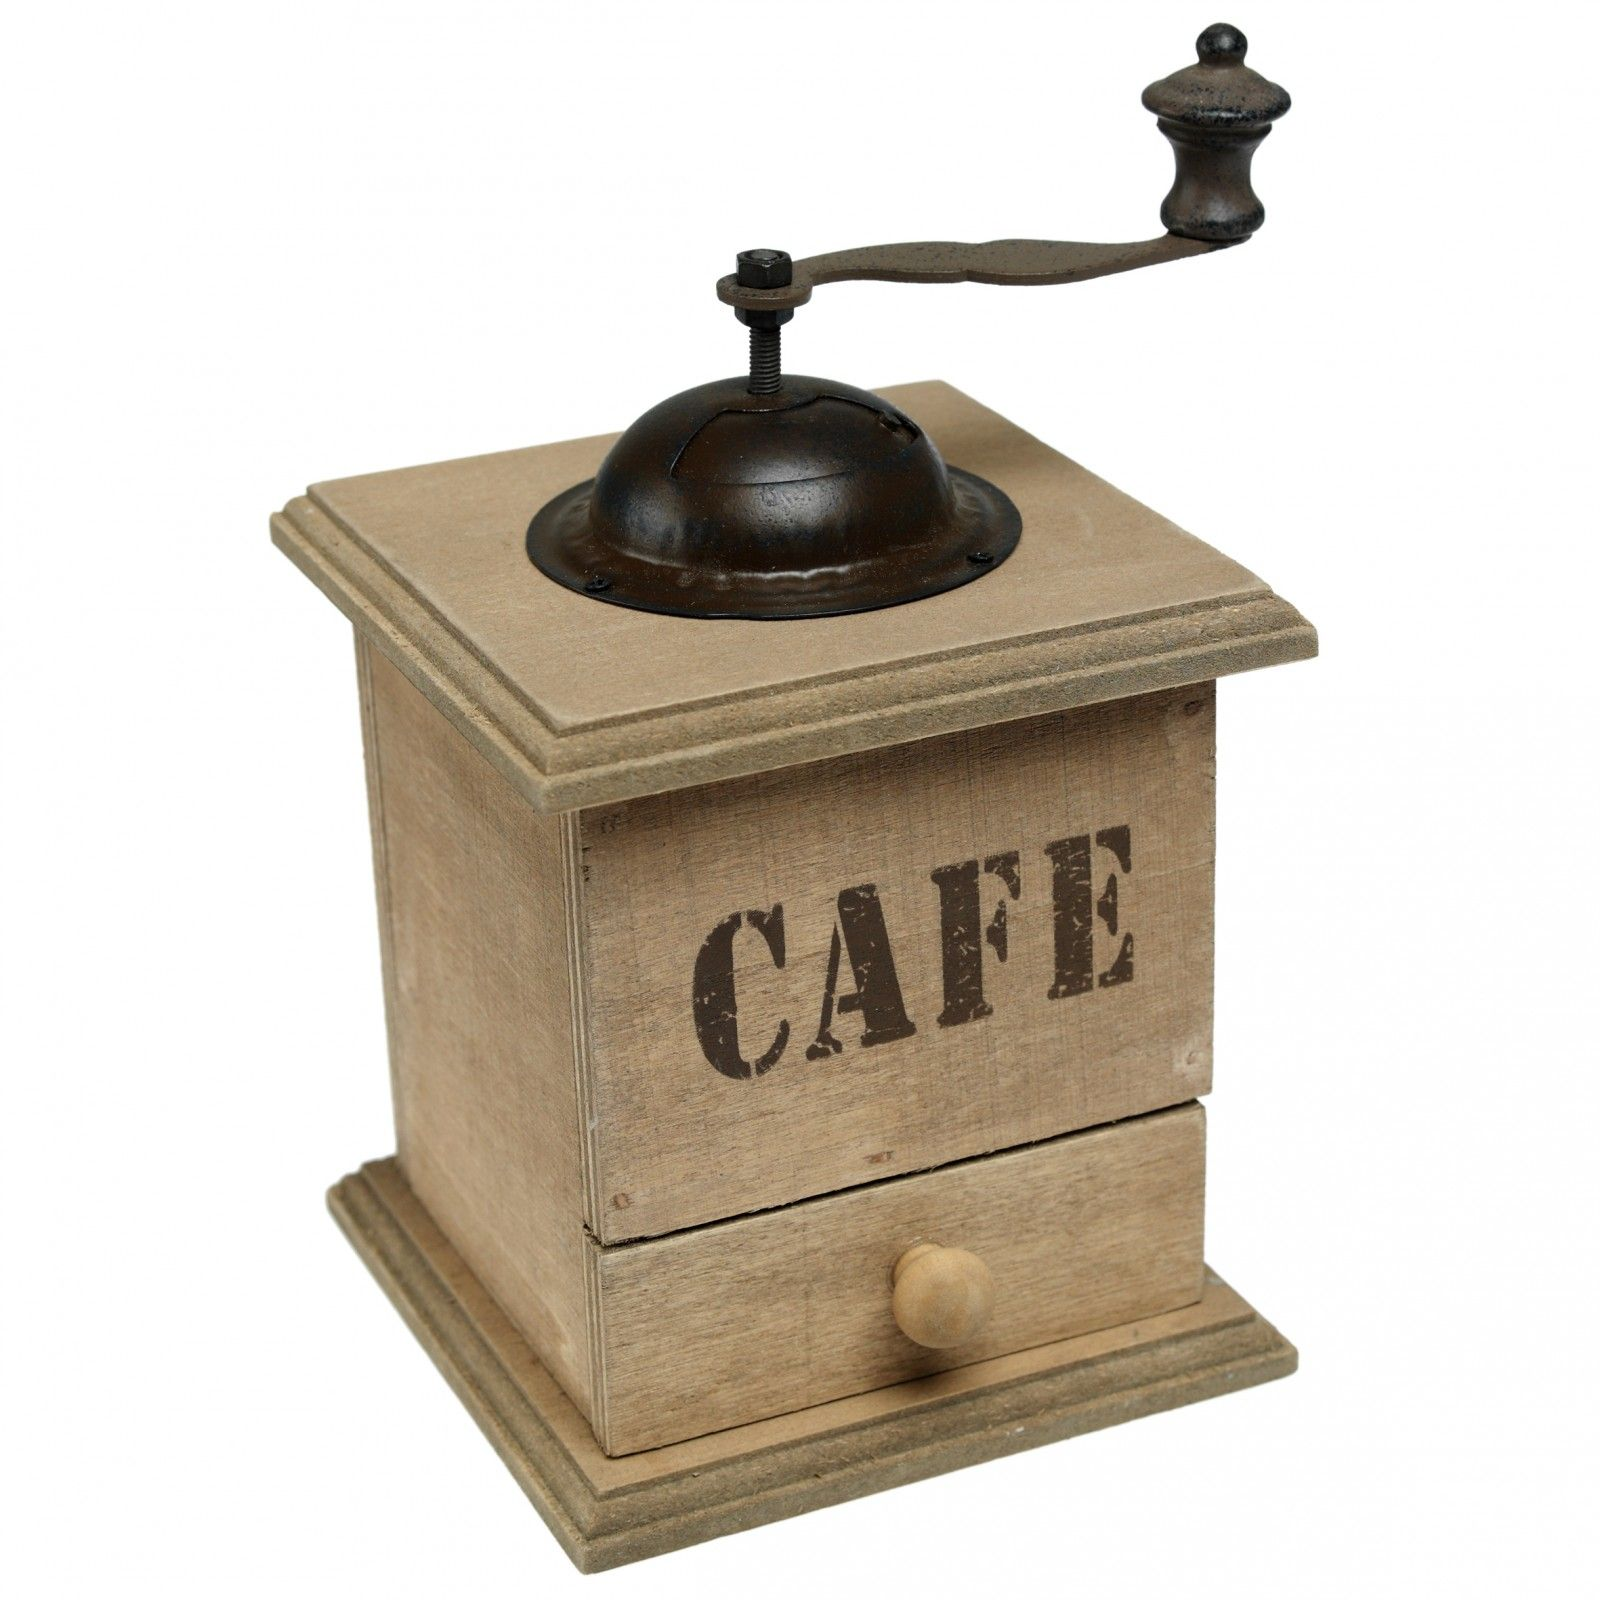 PeriodStyle Decorative Coffee Grinder Mill Coffee theme